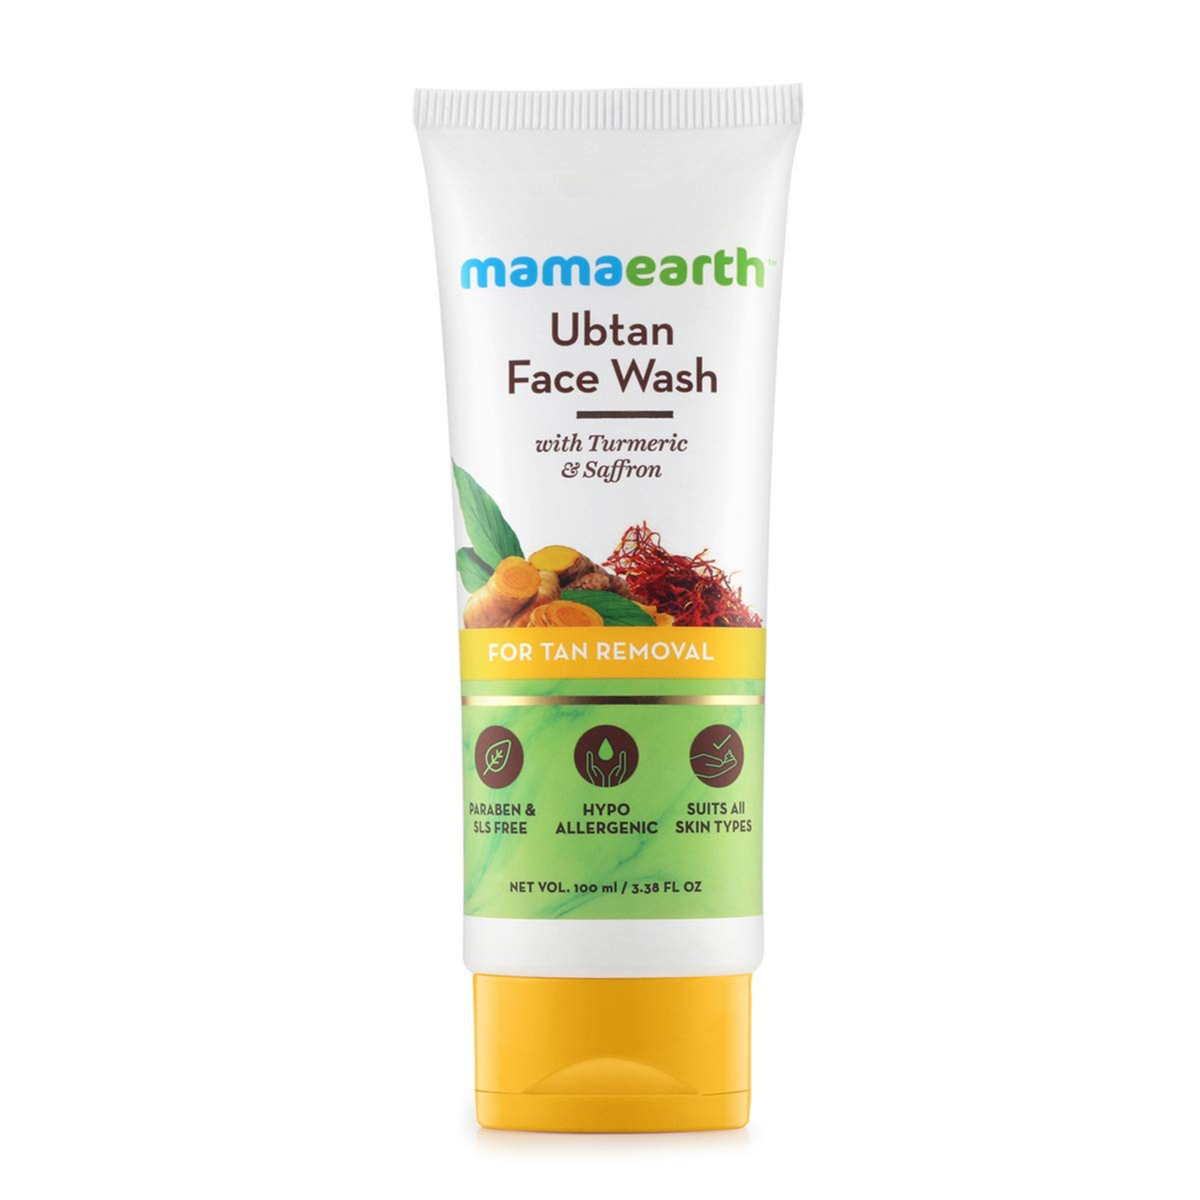 Mamaearth Ubtan Natural Face Wash for All Skin Type with Turmeric & Saffron for Tan removal and Skin brightning 100 ml - SLS & Paraben Free : Amazon.in: Beauty